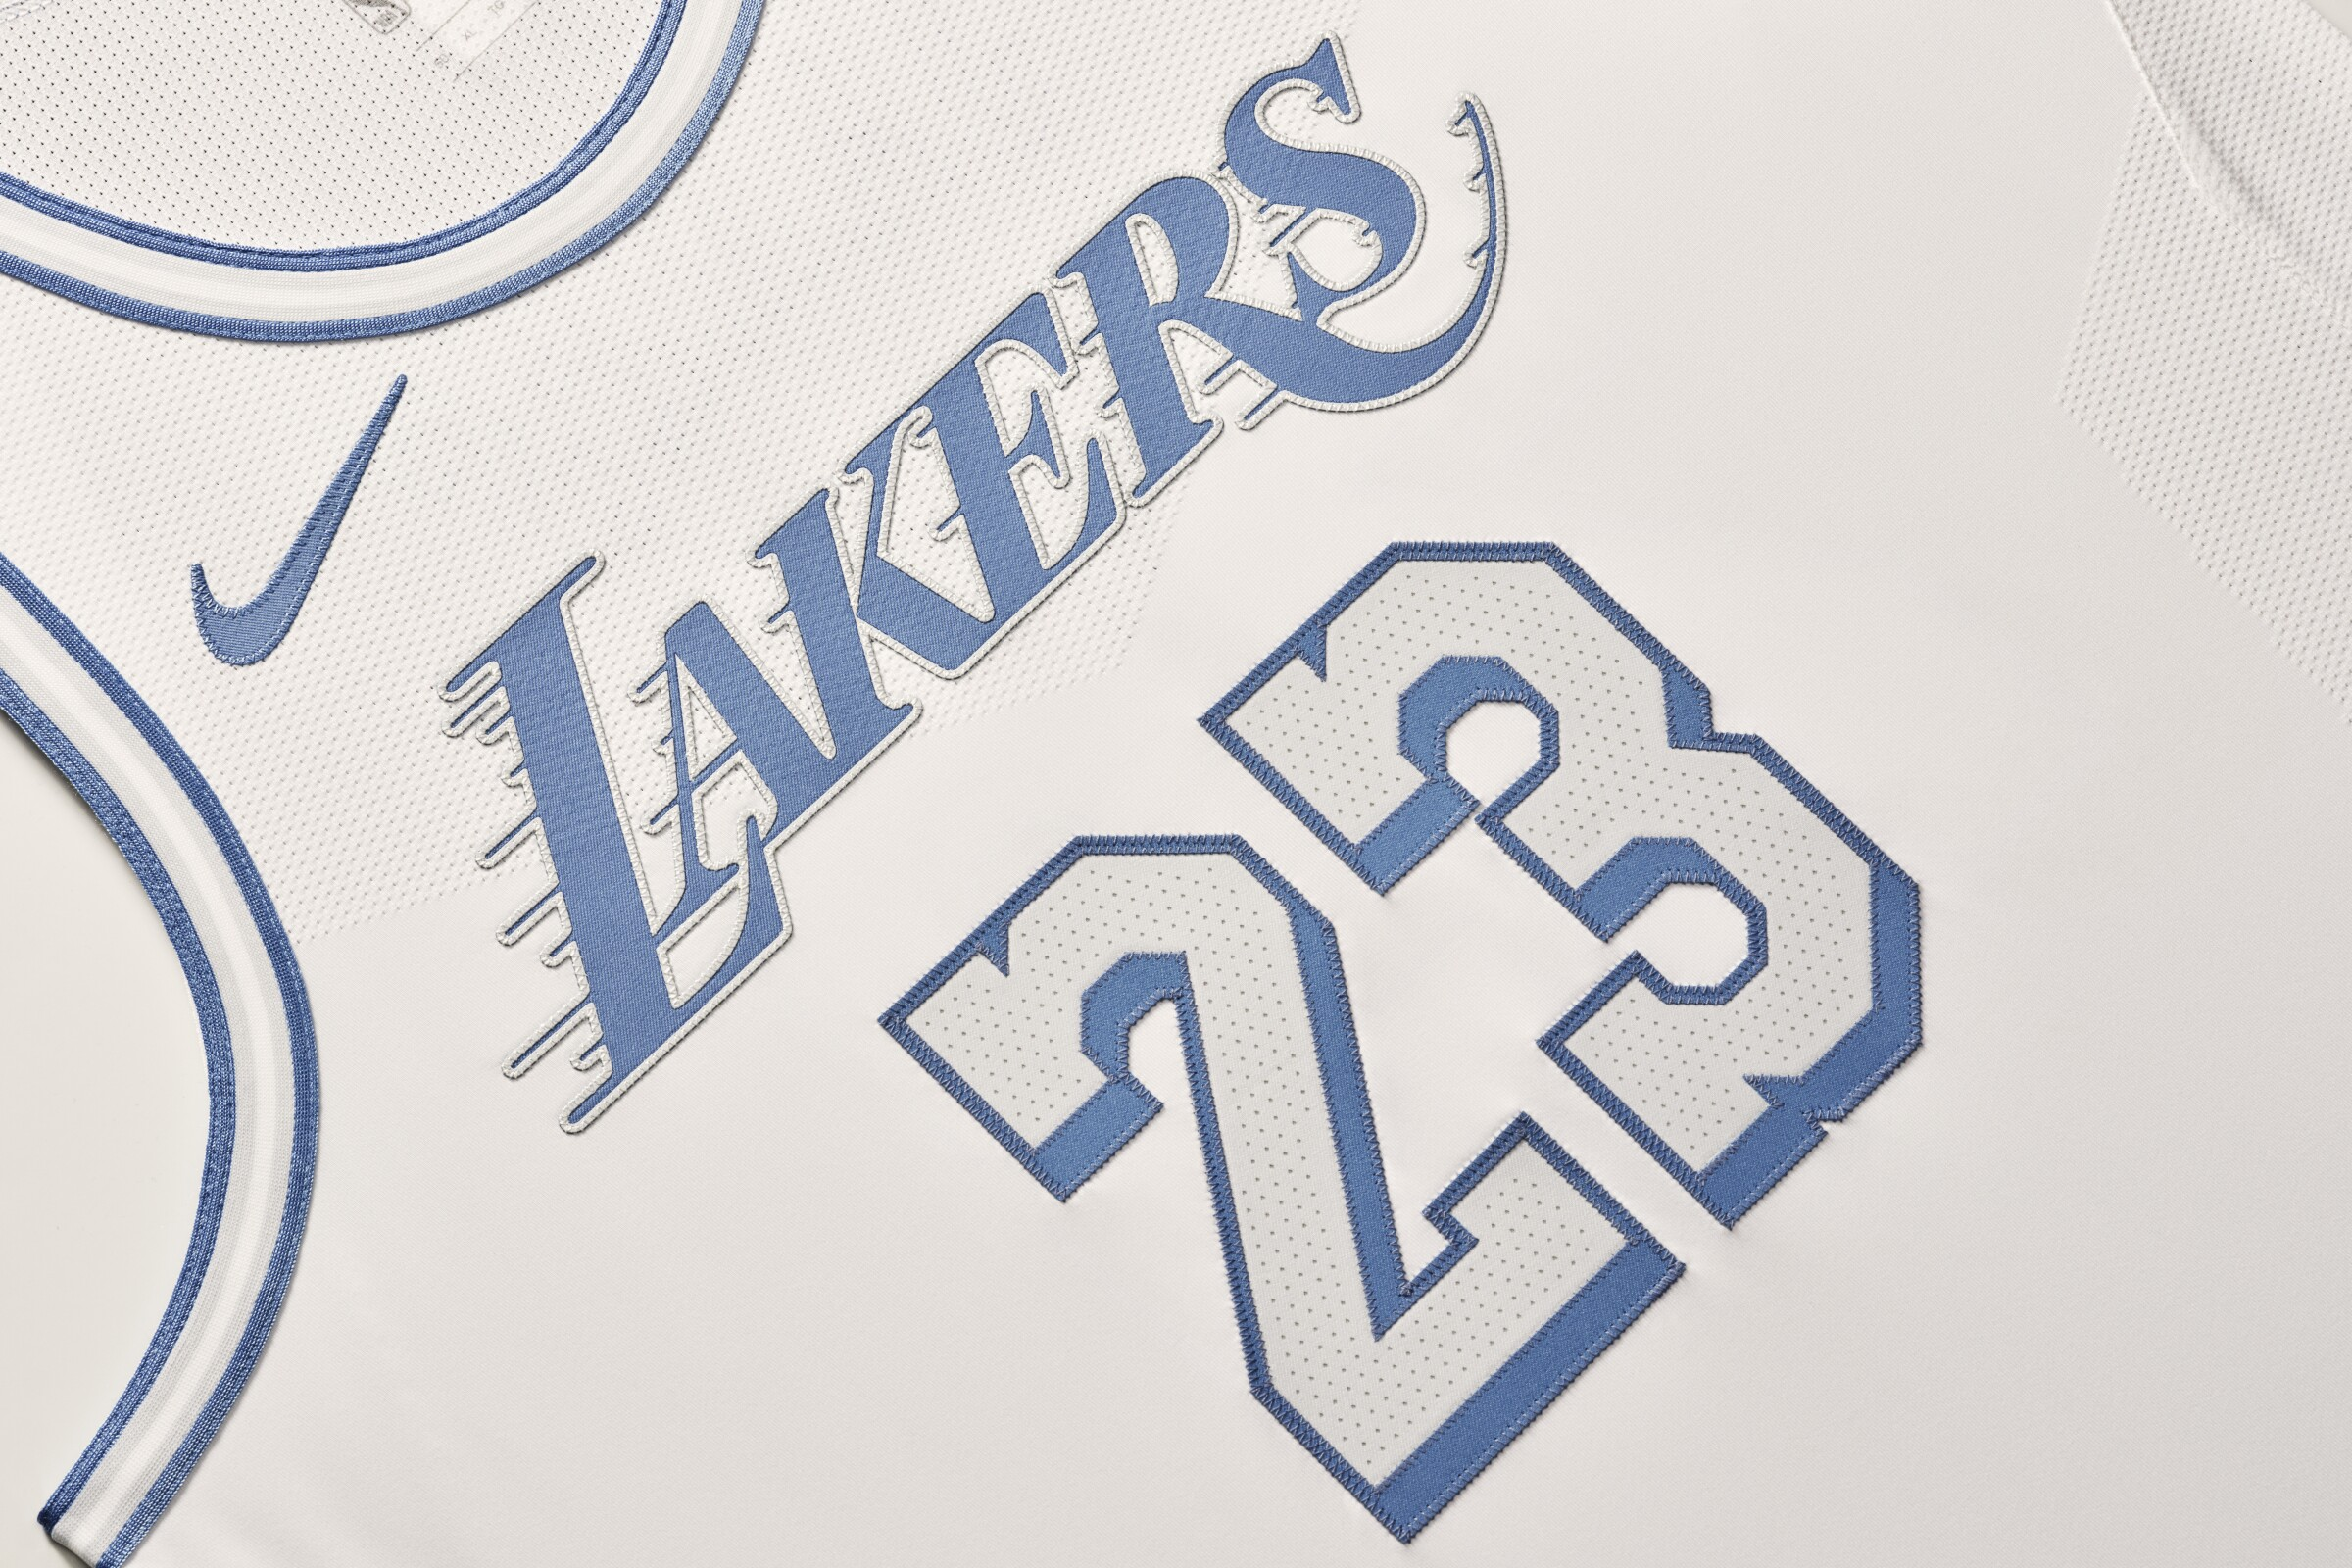 Where does the Lakers City Edition jersey rank among those of the NBA teams?